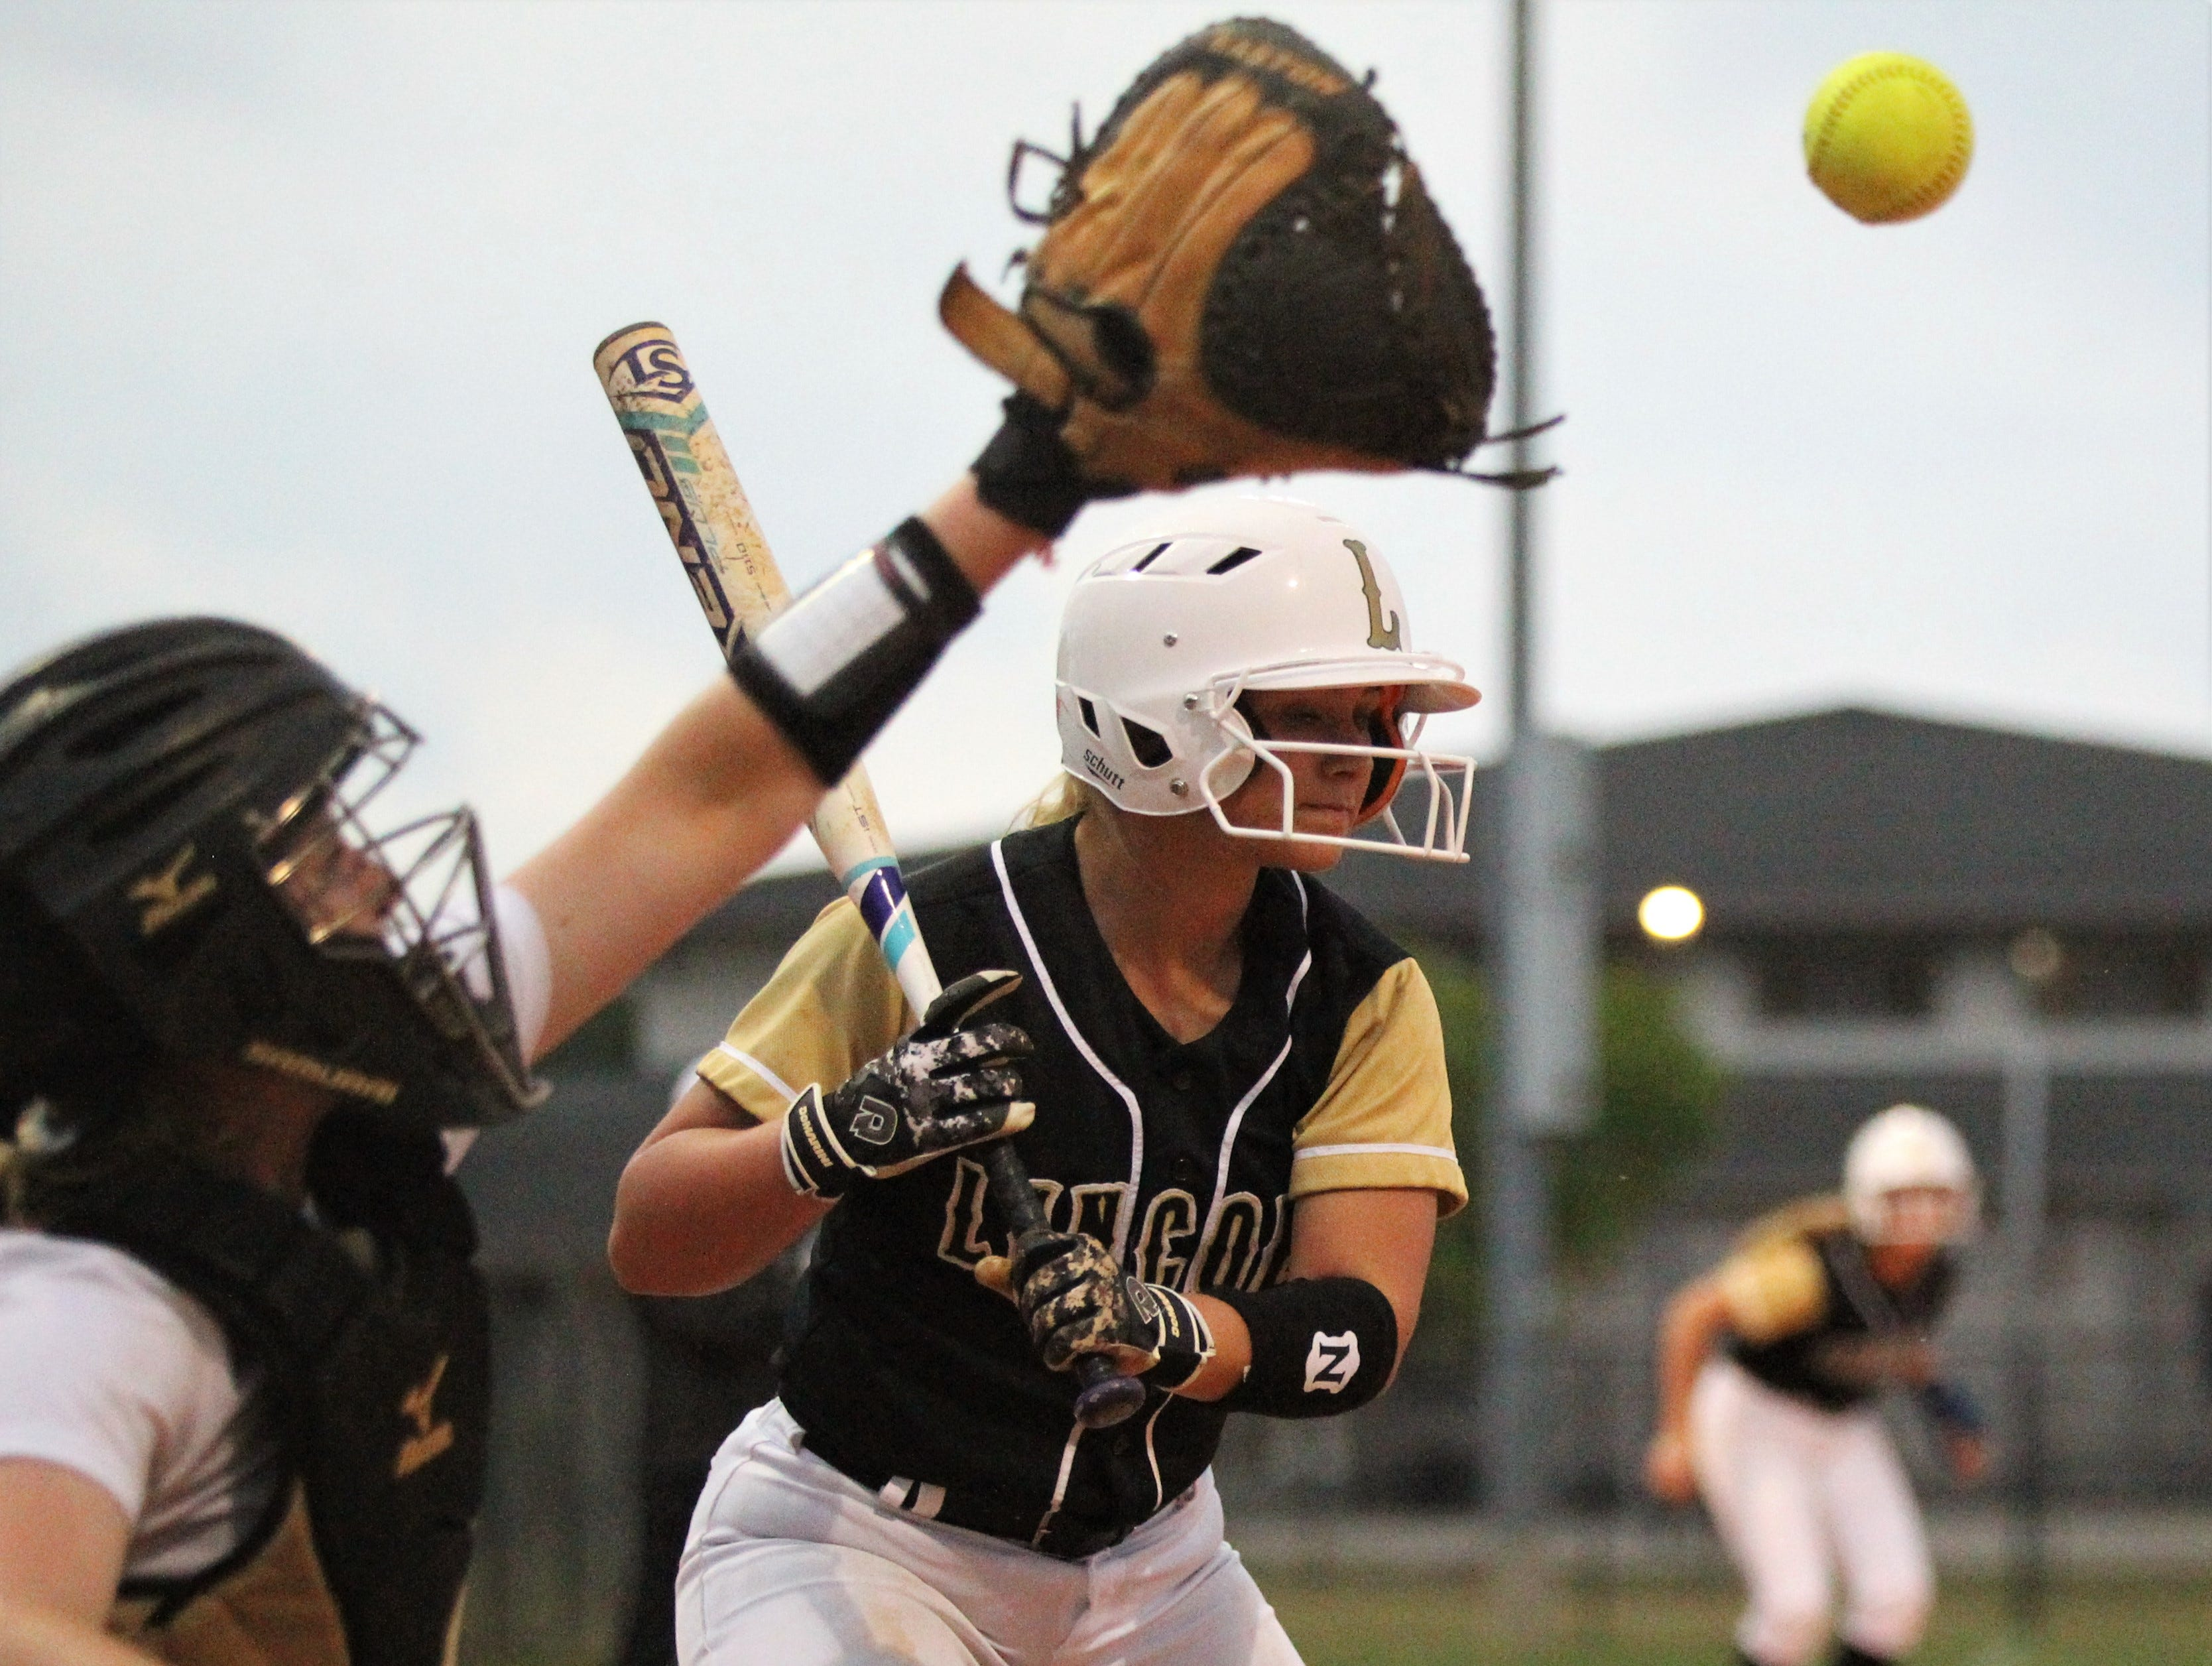 Lincoln junior Emma Alley watches a high pitch as Lincoln's softball team beat Florida High 7-3 on Thursday, April 4, 2019.